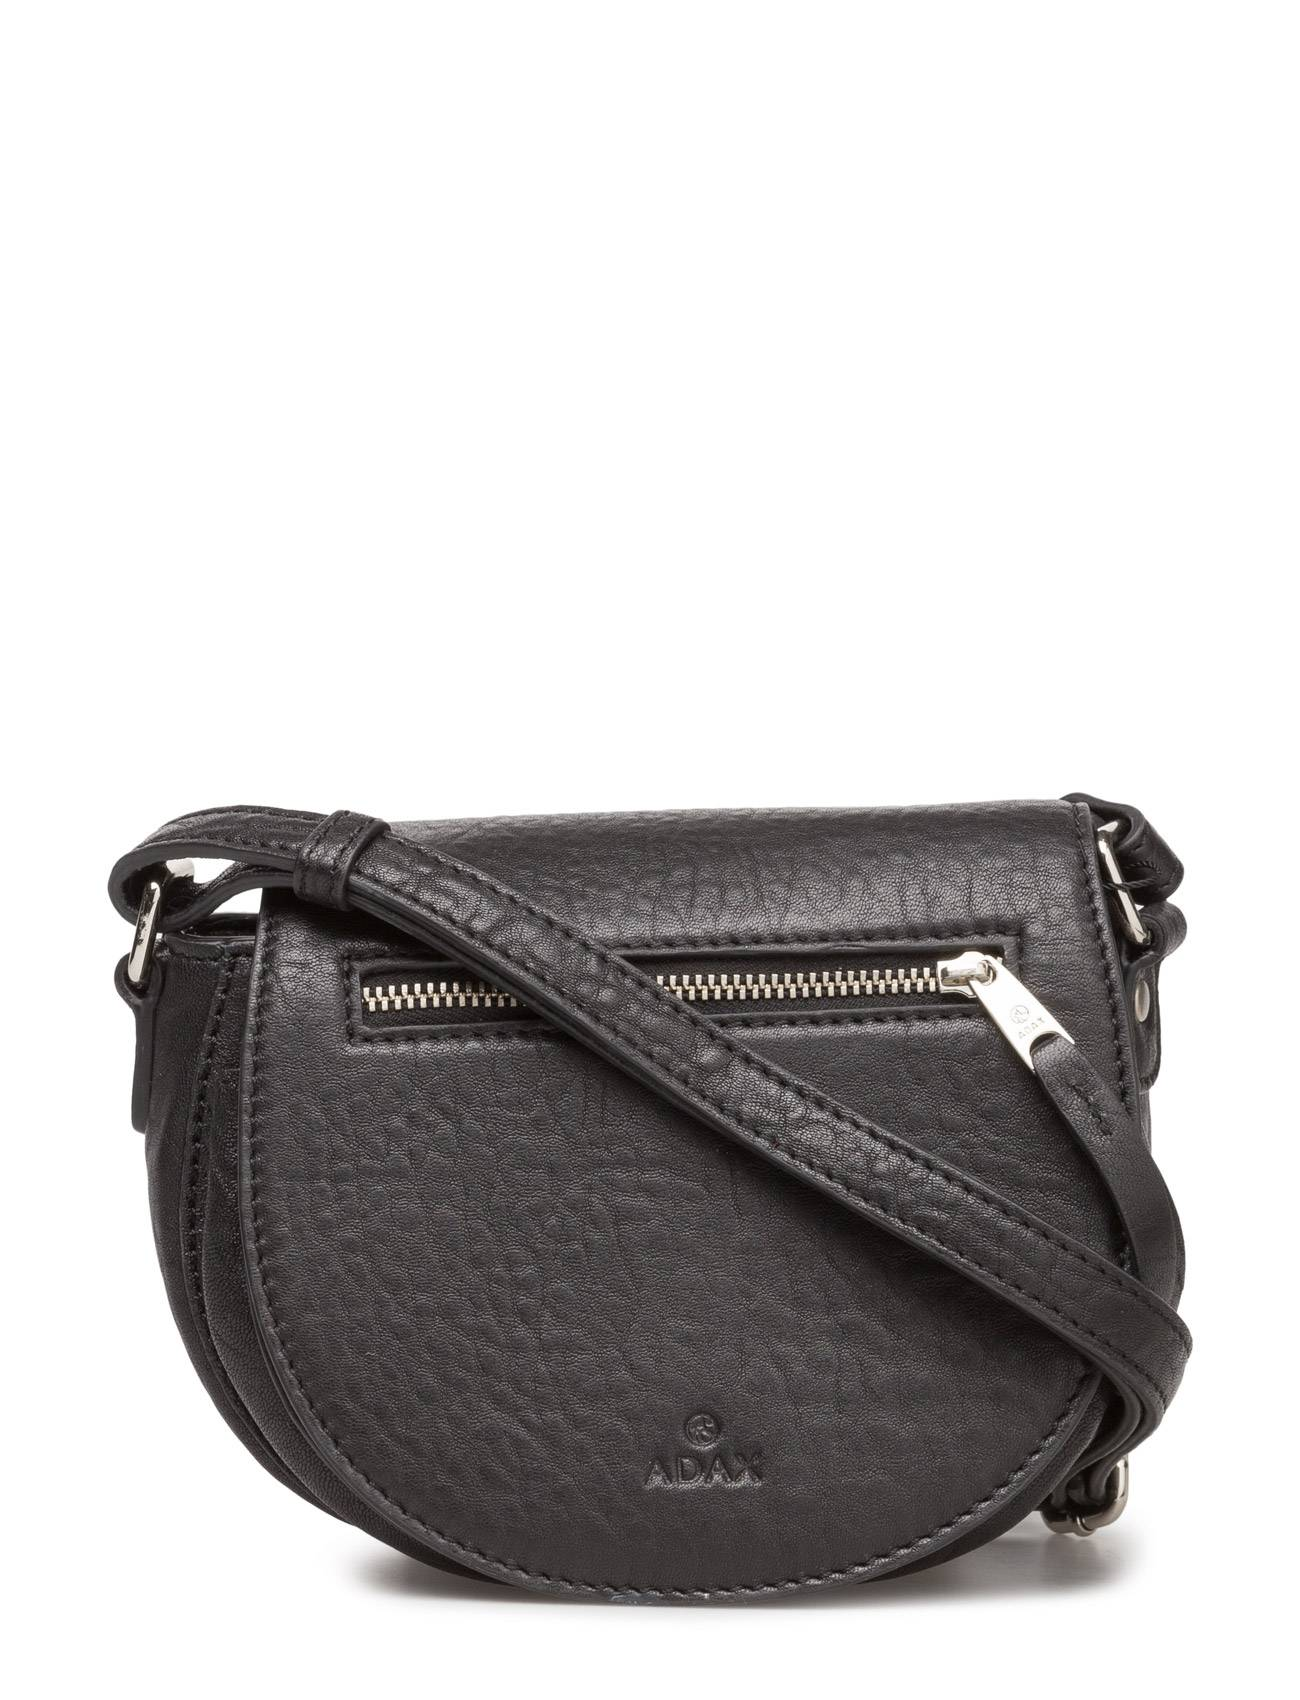 Adax Bologna Shoulder Bag Solvej